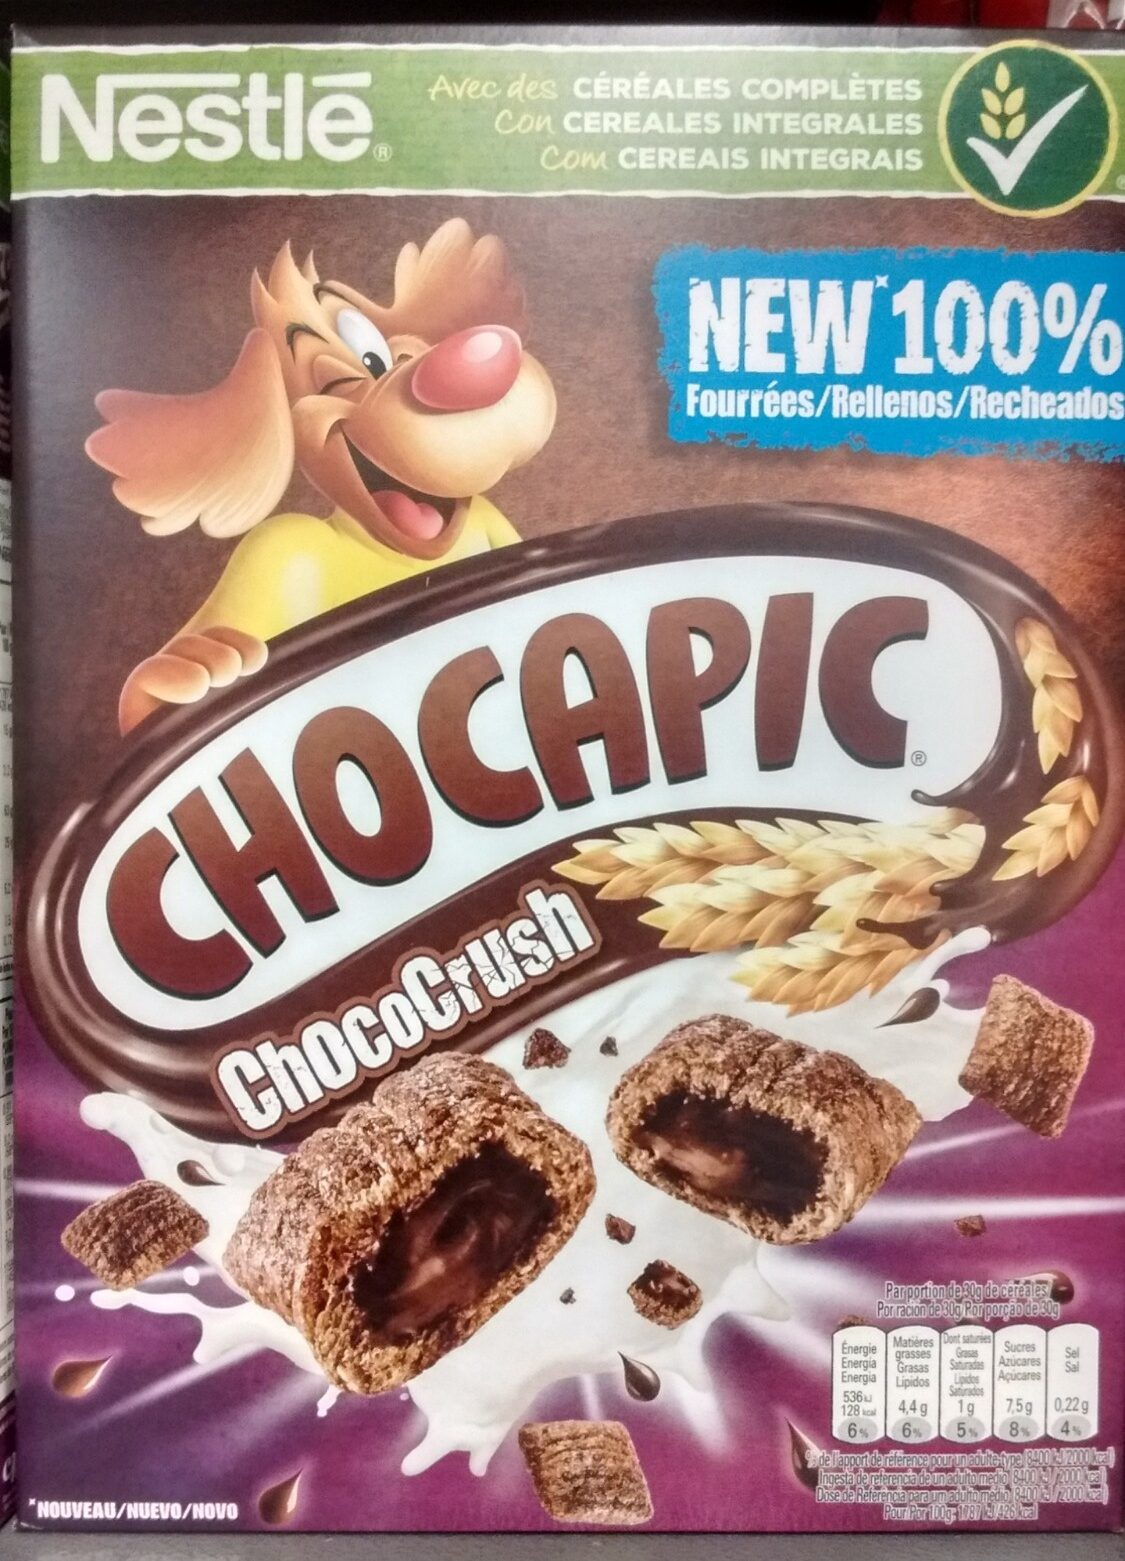 Chocapic ChocoCrush - Producto